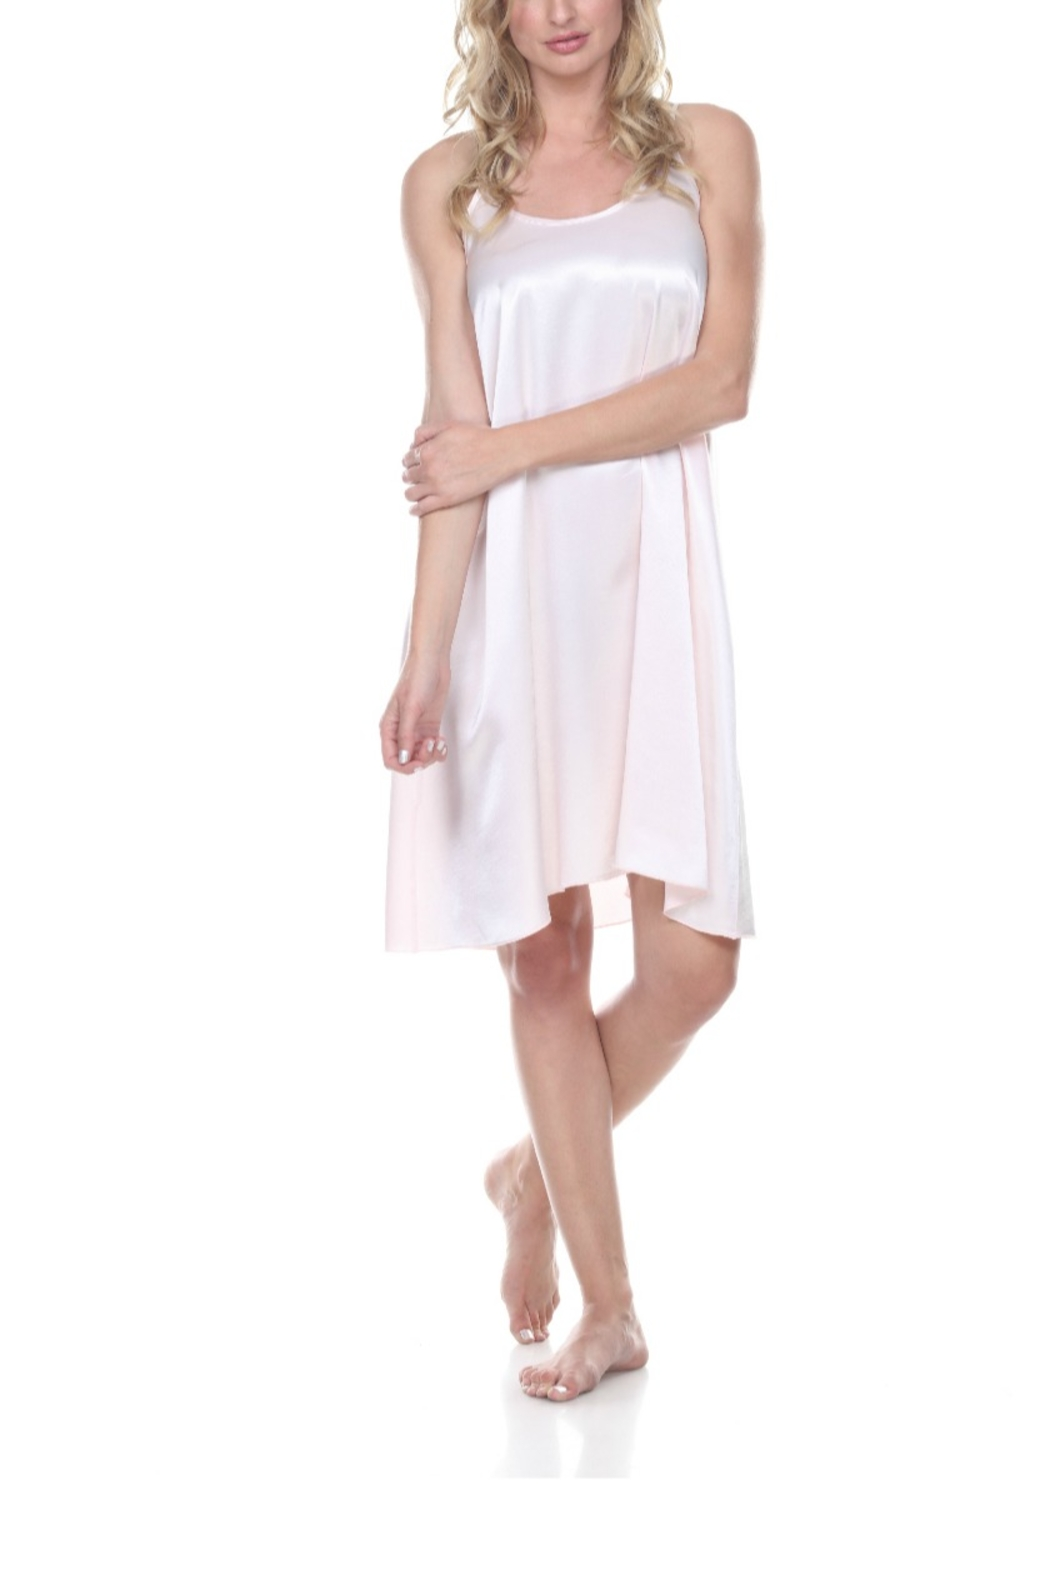 PJHARLOW RUBY Satin Nightgown With Spaghetti Strap And Gathered Back - Front Cropped Image